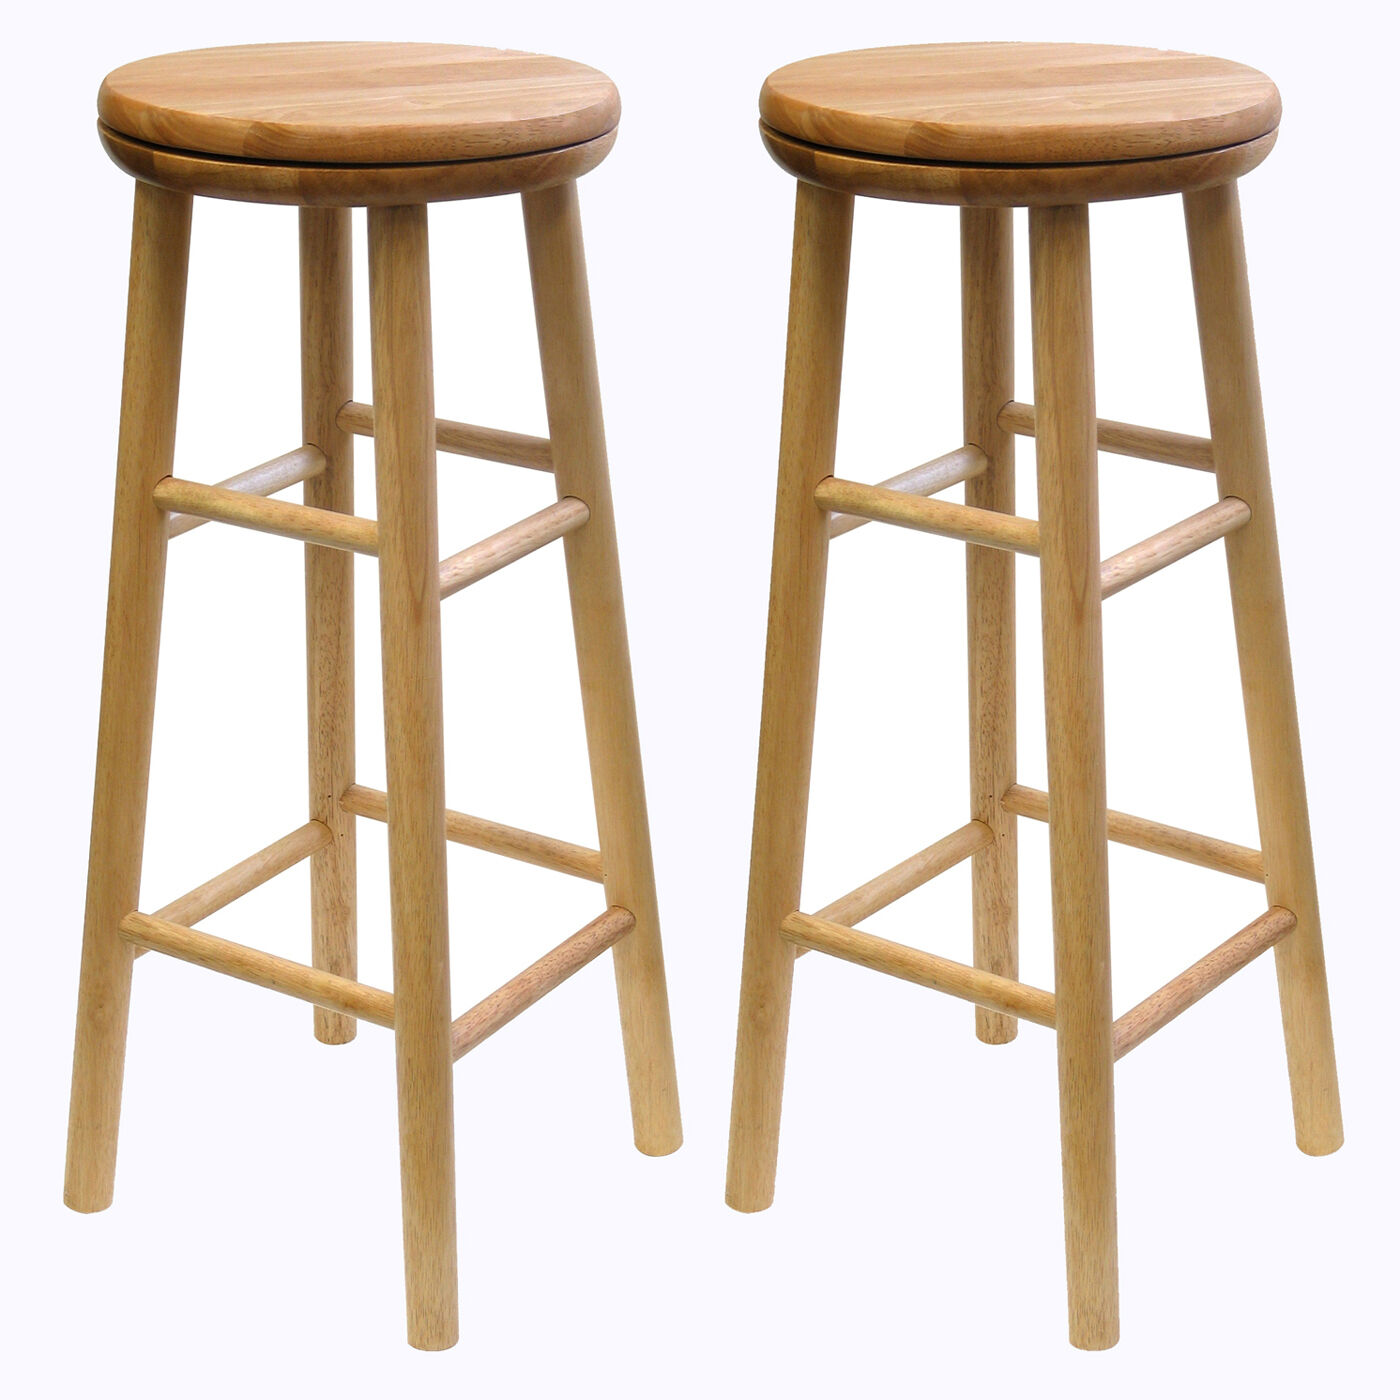 New Set of 2 30 High Swivel Wooden Stools in Natural Color  : 28KGrHqFHJEoEWM2Vr929BQB9VM29w217E7E6057 from www.ebay.com size 1400 x 1400 jpeg 180kB